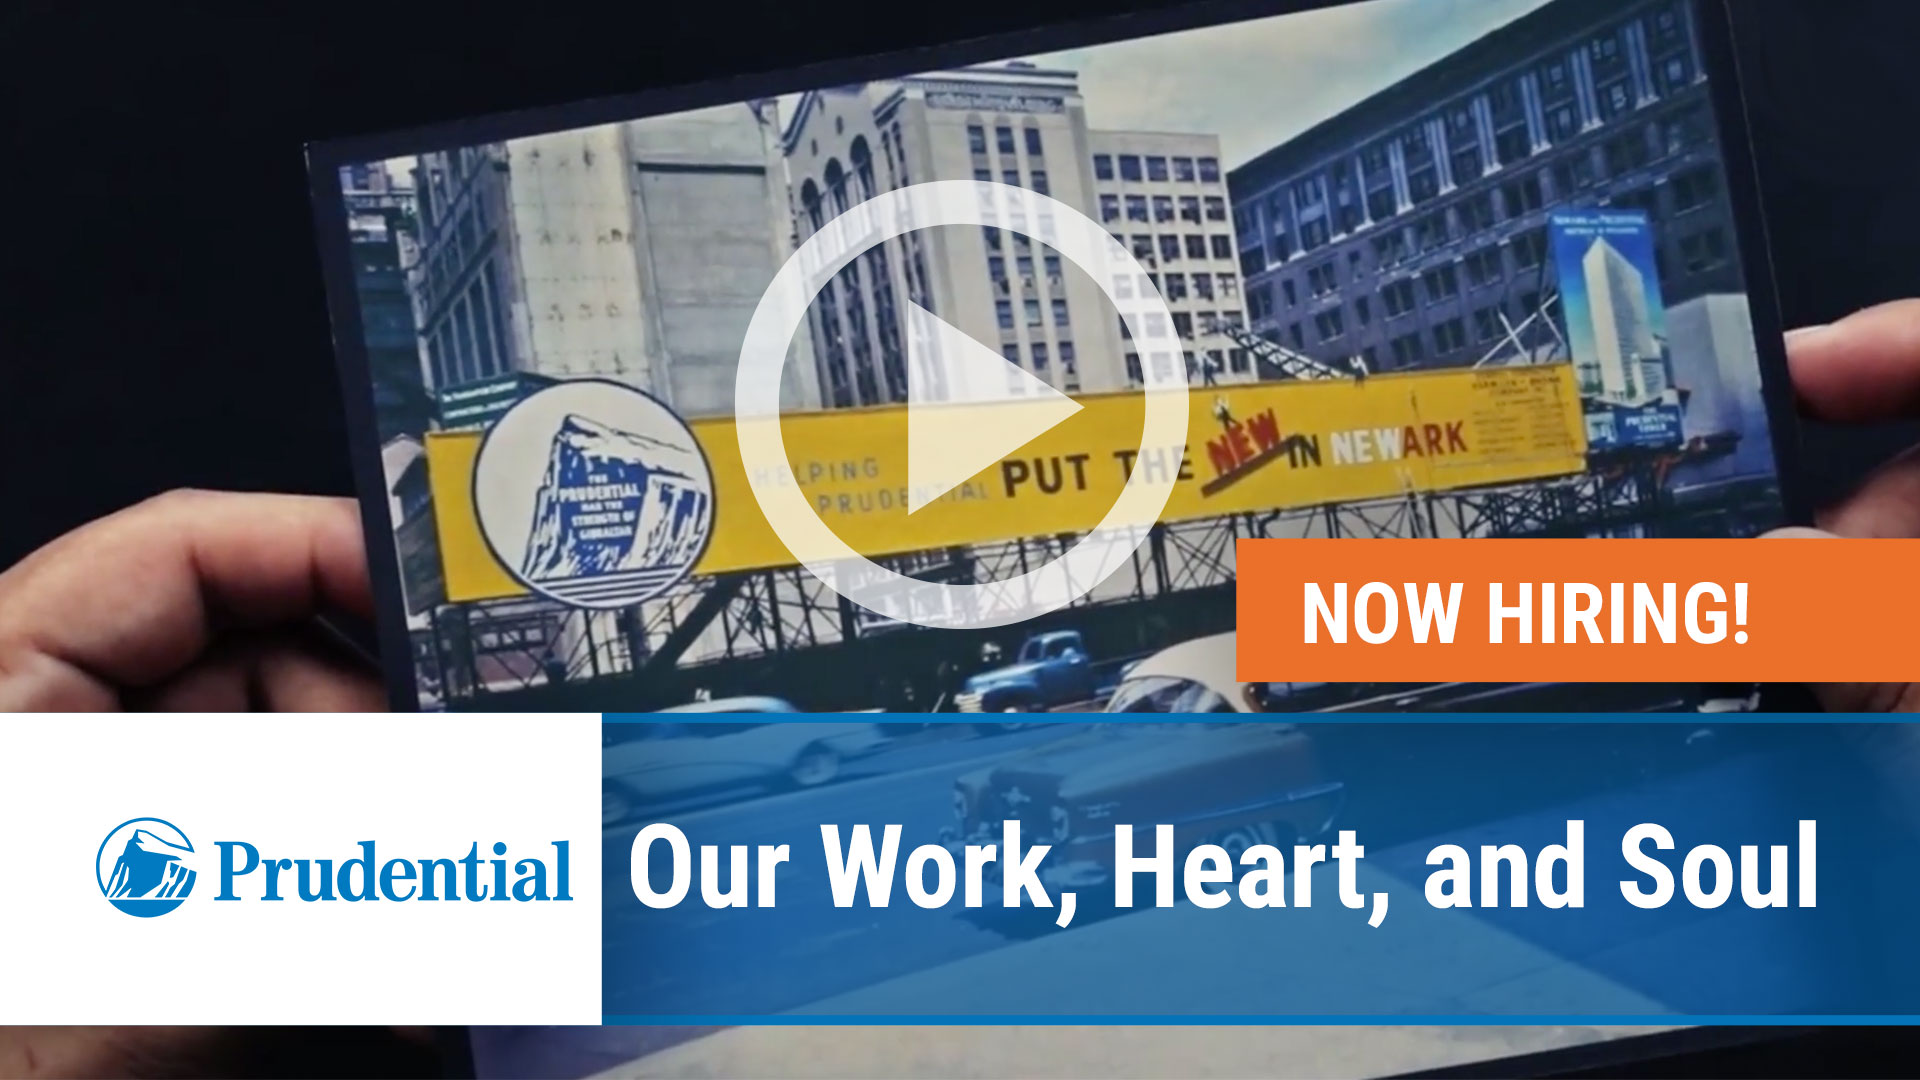 Watch our careers video for available job opening Our Work, Heart, and Soul in Dresher, PA